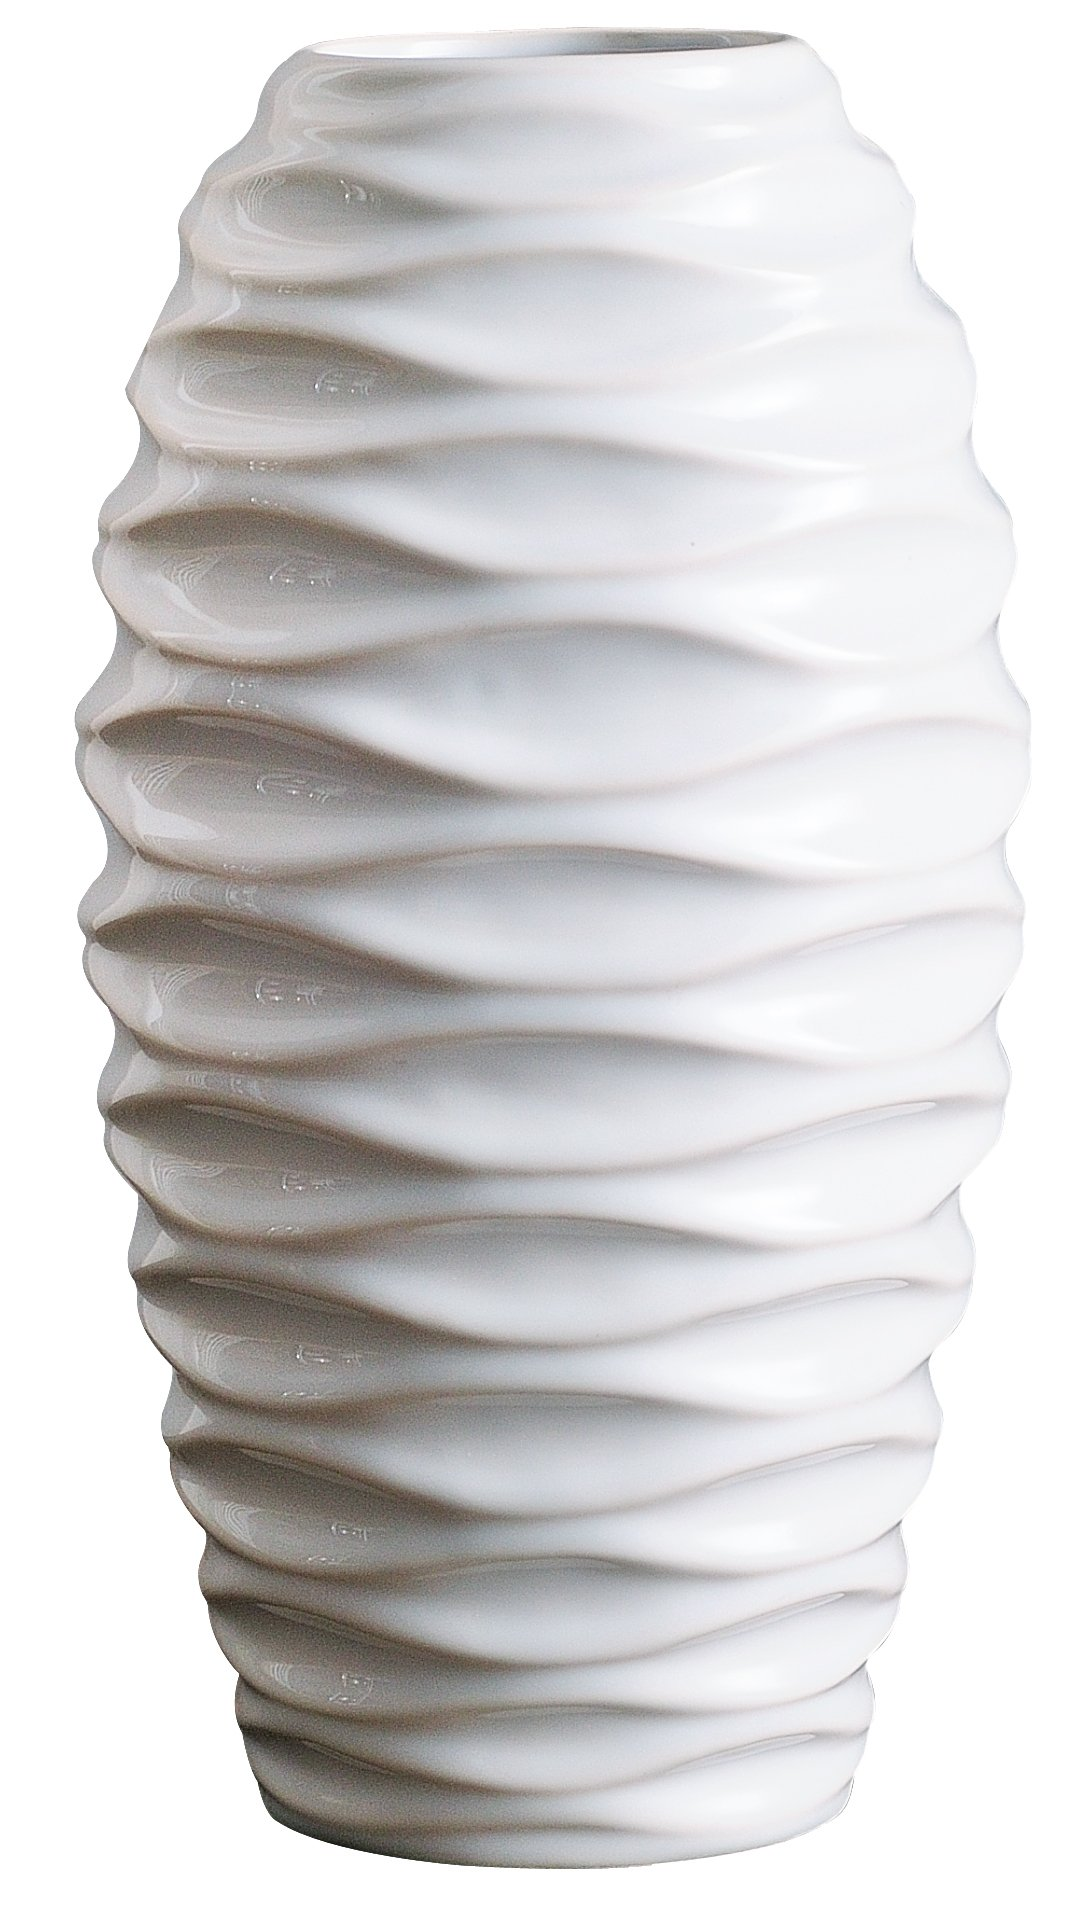 Jusalpha 11.6 Inches Ceramic Vase, Ideal Gift for Weddings, Party, Home Decor, Office Decor #03 (Large, White) - 【PREMIUM QUALITY】Always use the Material of the best Quality - Made of high quality ceramics, produced in China. 【MINIMALIST STYLE】Provides a modern & stylish sense to accentuate the personality of your home decor. 【DAZZLING GIFT】: This classic design will complement traditional and contemporary tastes, which has made it a popular gift for weddings, holidays and other special occasions. - vases, kitchen-dining-room-decor, kitchen-dining-room - 71SK2f9y2qL -